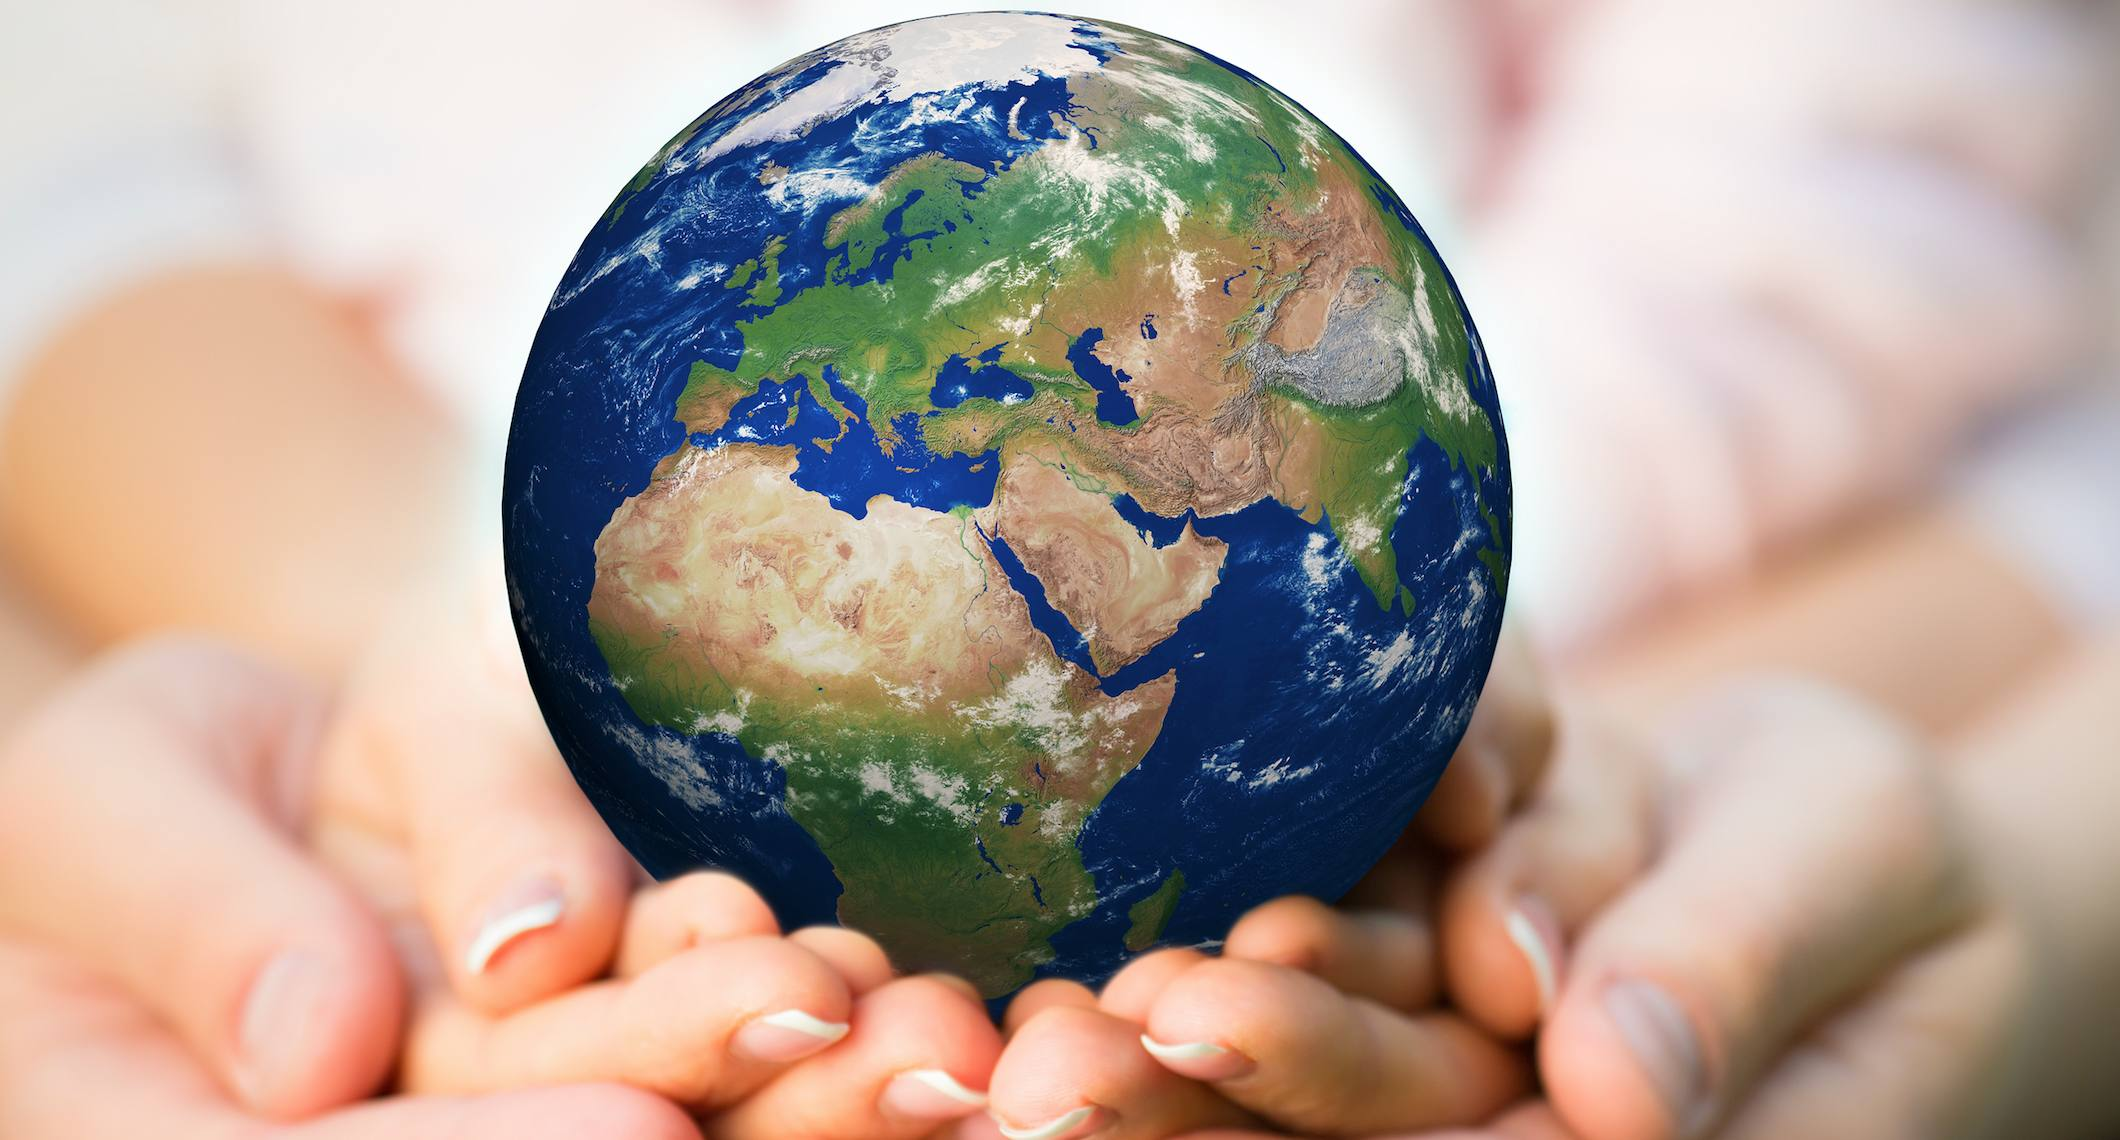 Planet Earth in peoples' hands